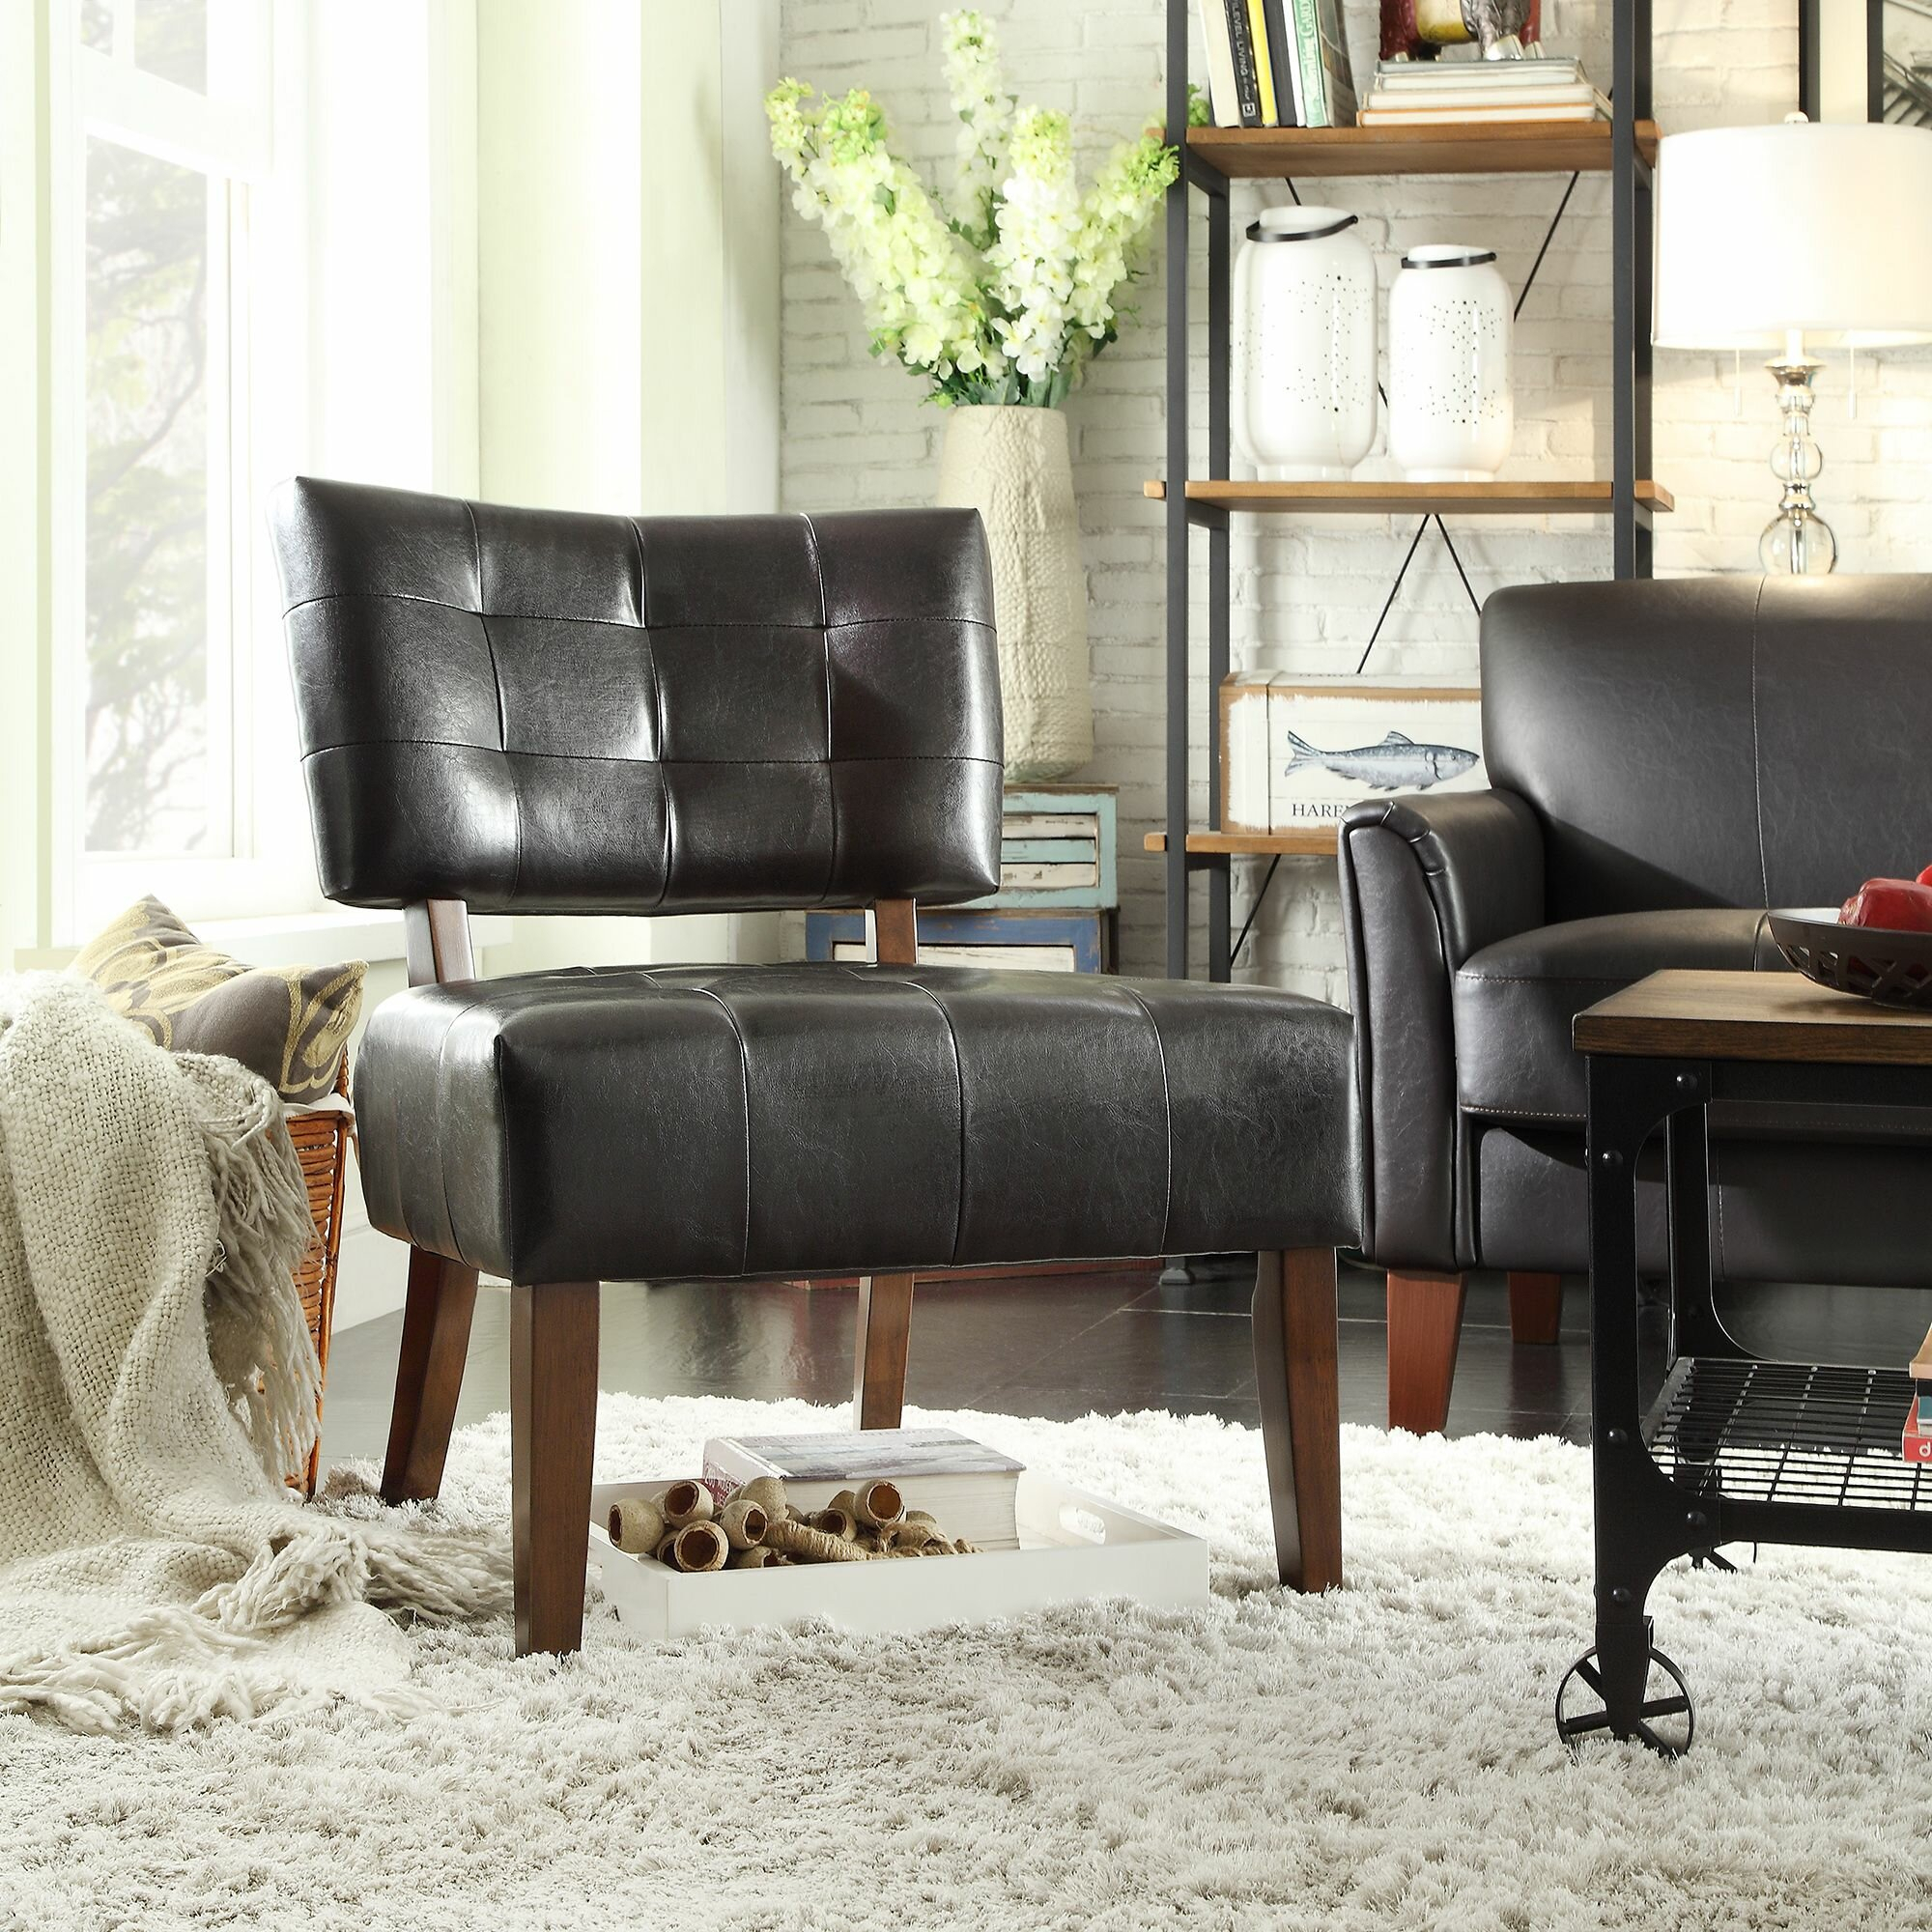 Heslington Faux Leather Side Chair Pertaining To Perz Tufted Faux Leather Convertible Chairs (View 10 of 15)